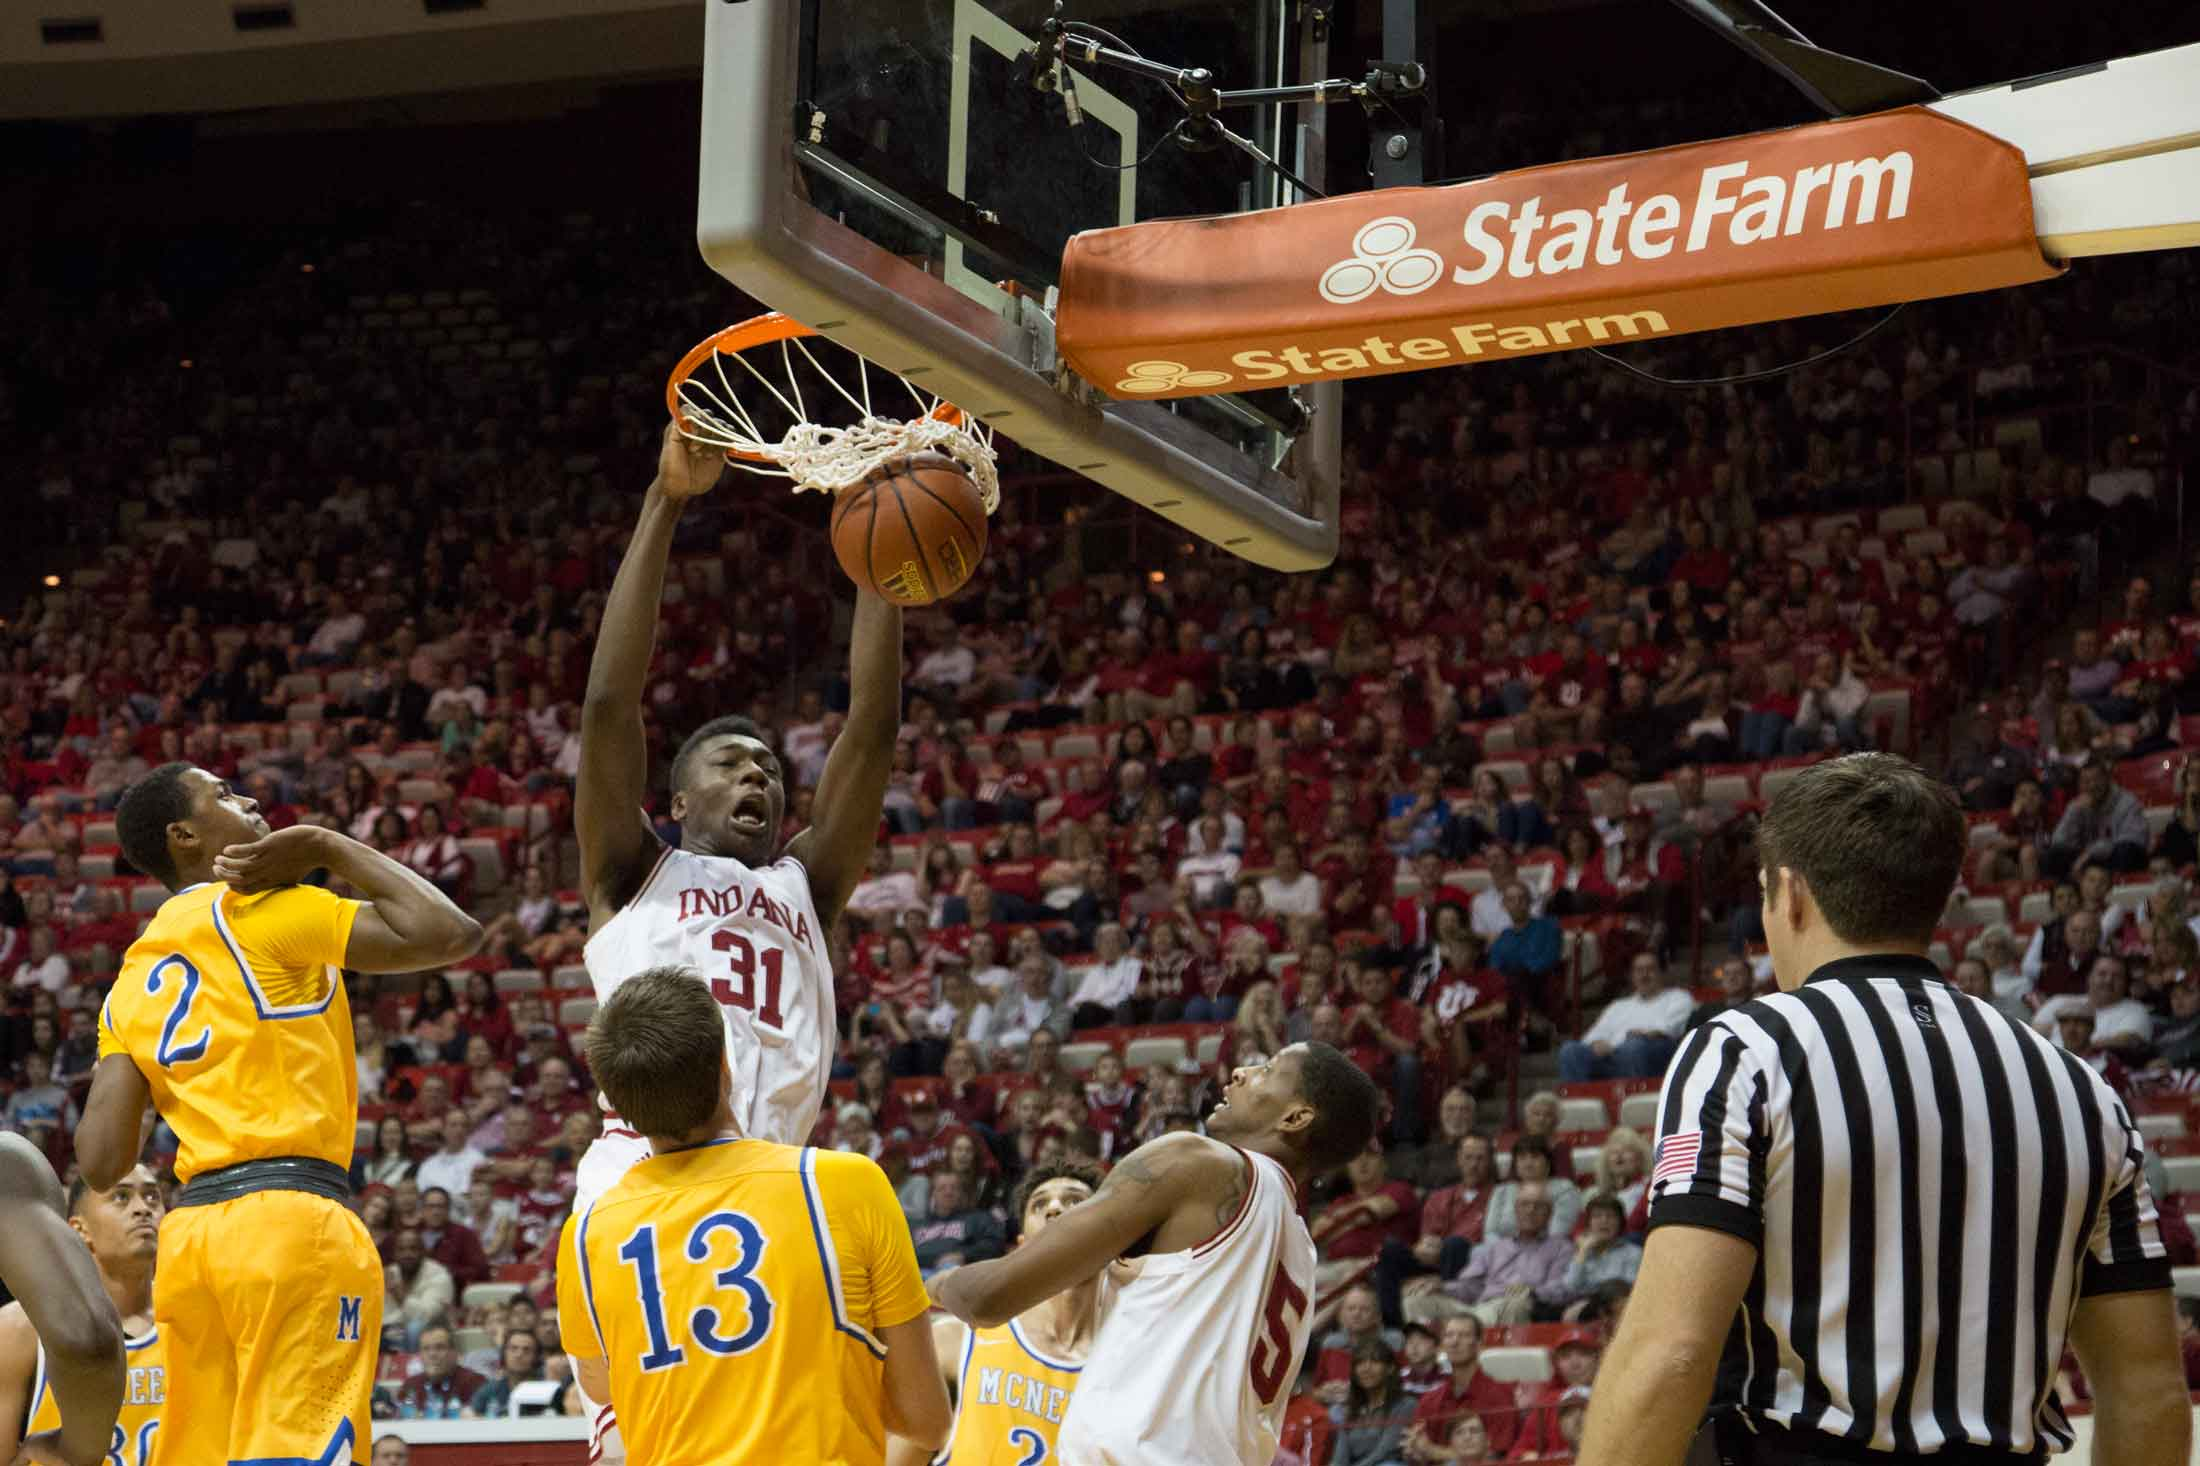 Thomas Bryant throw down a dunk in the second half of a game against McNeese State. The Hoosiers won, 105-60.